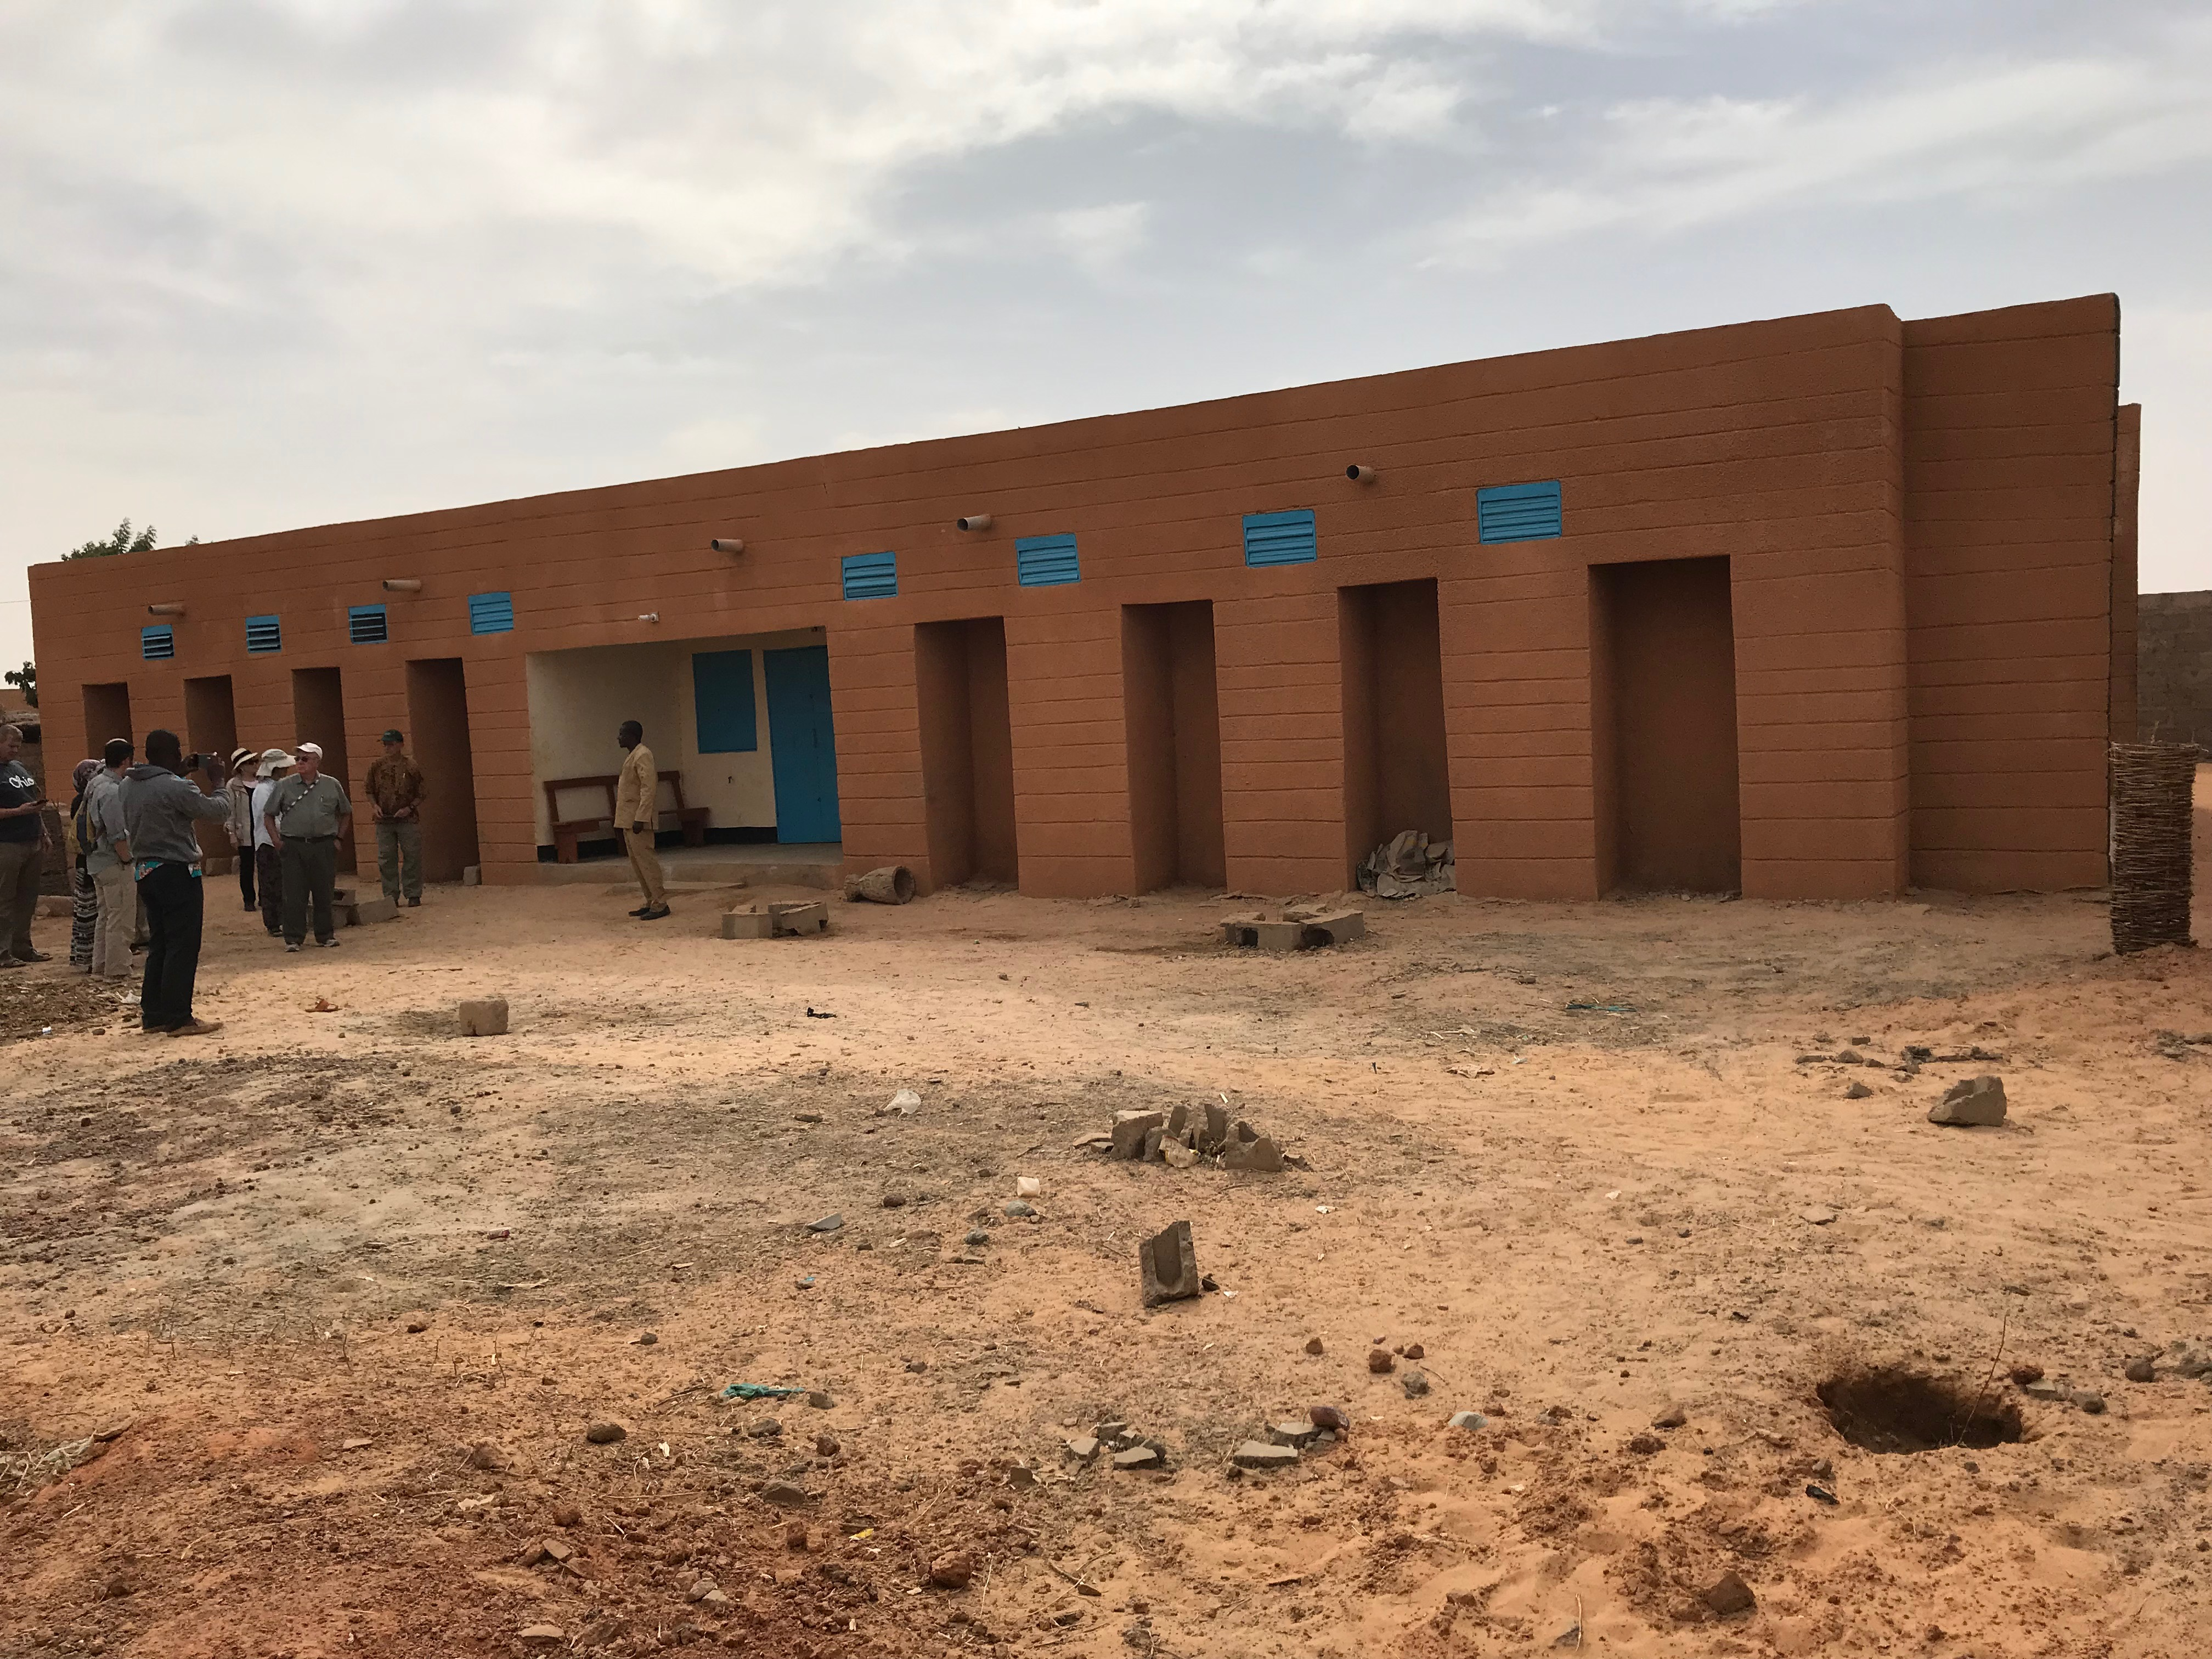 The newly finished student hosting center in this village will hold a maximum 32 students in bunkbeds. There are separate rooms for boys and girls, with a study room in the middle.